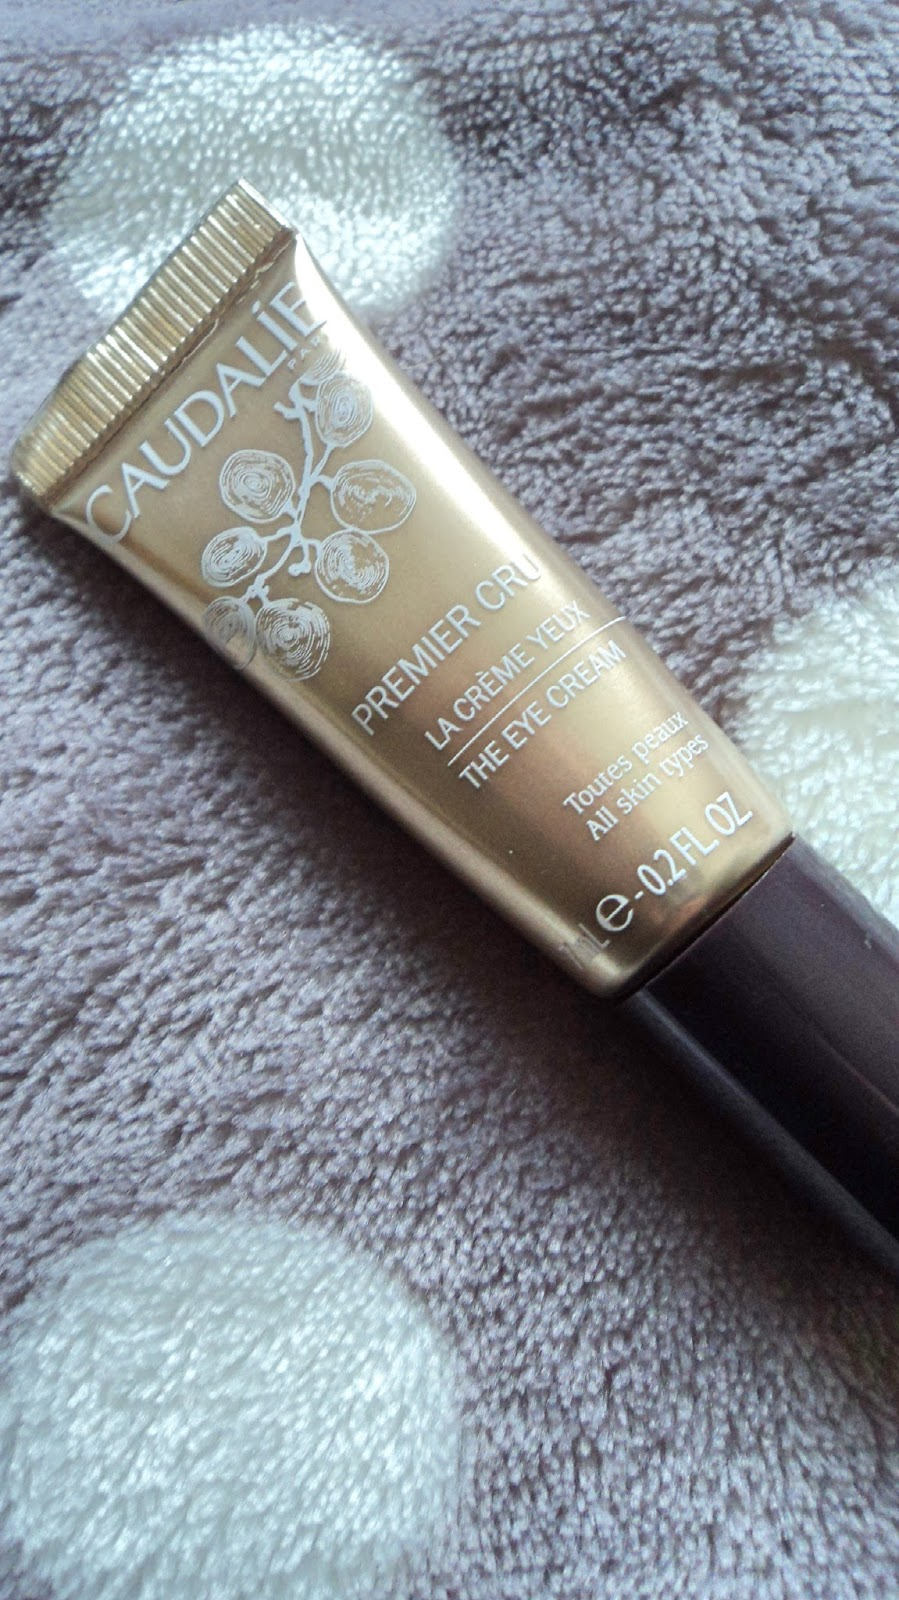 Caudalie Premier Cru Eye Cream Review